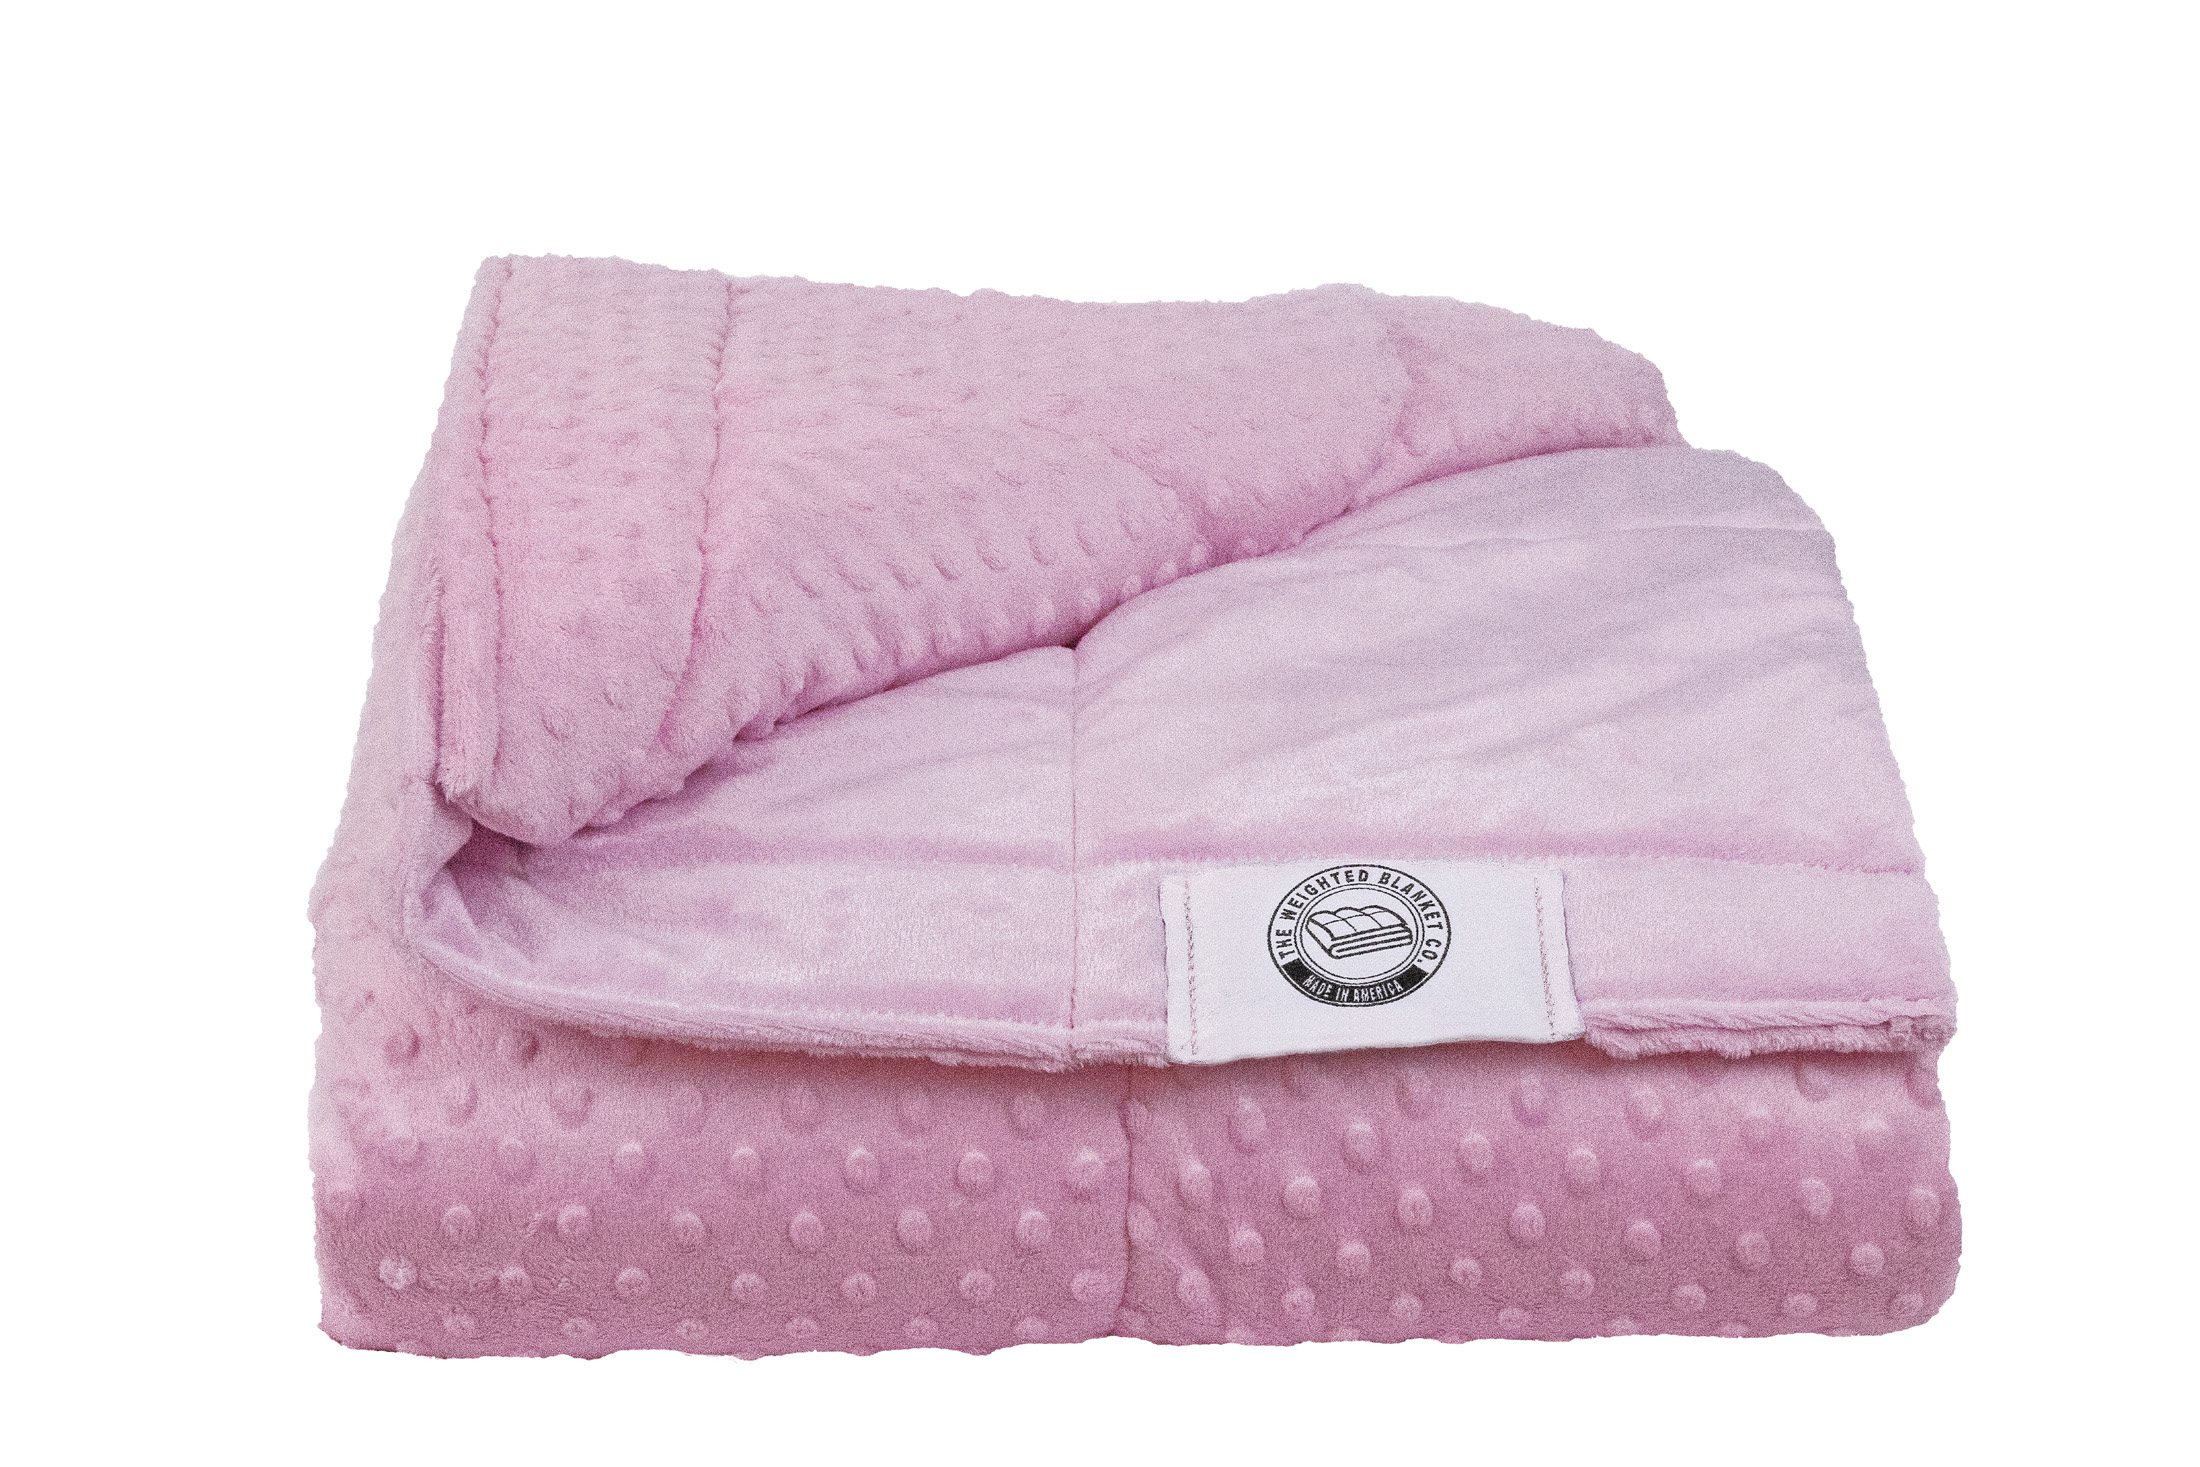 Pink Weighted Blanket Walmart Com Walmart Com